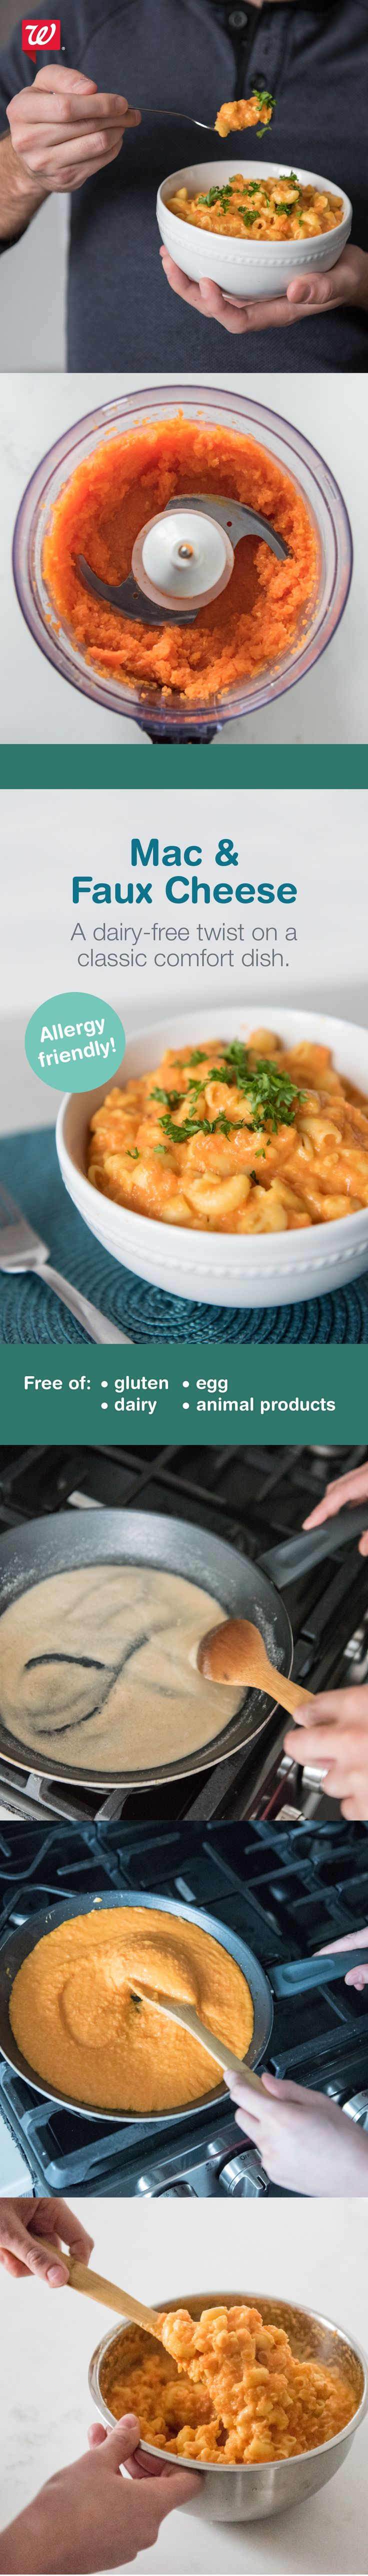 Try our dairy-free twist on a classic comfort dish for family dinner. Find the full recipe on our blog.